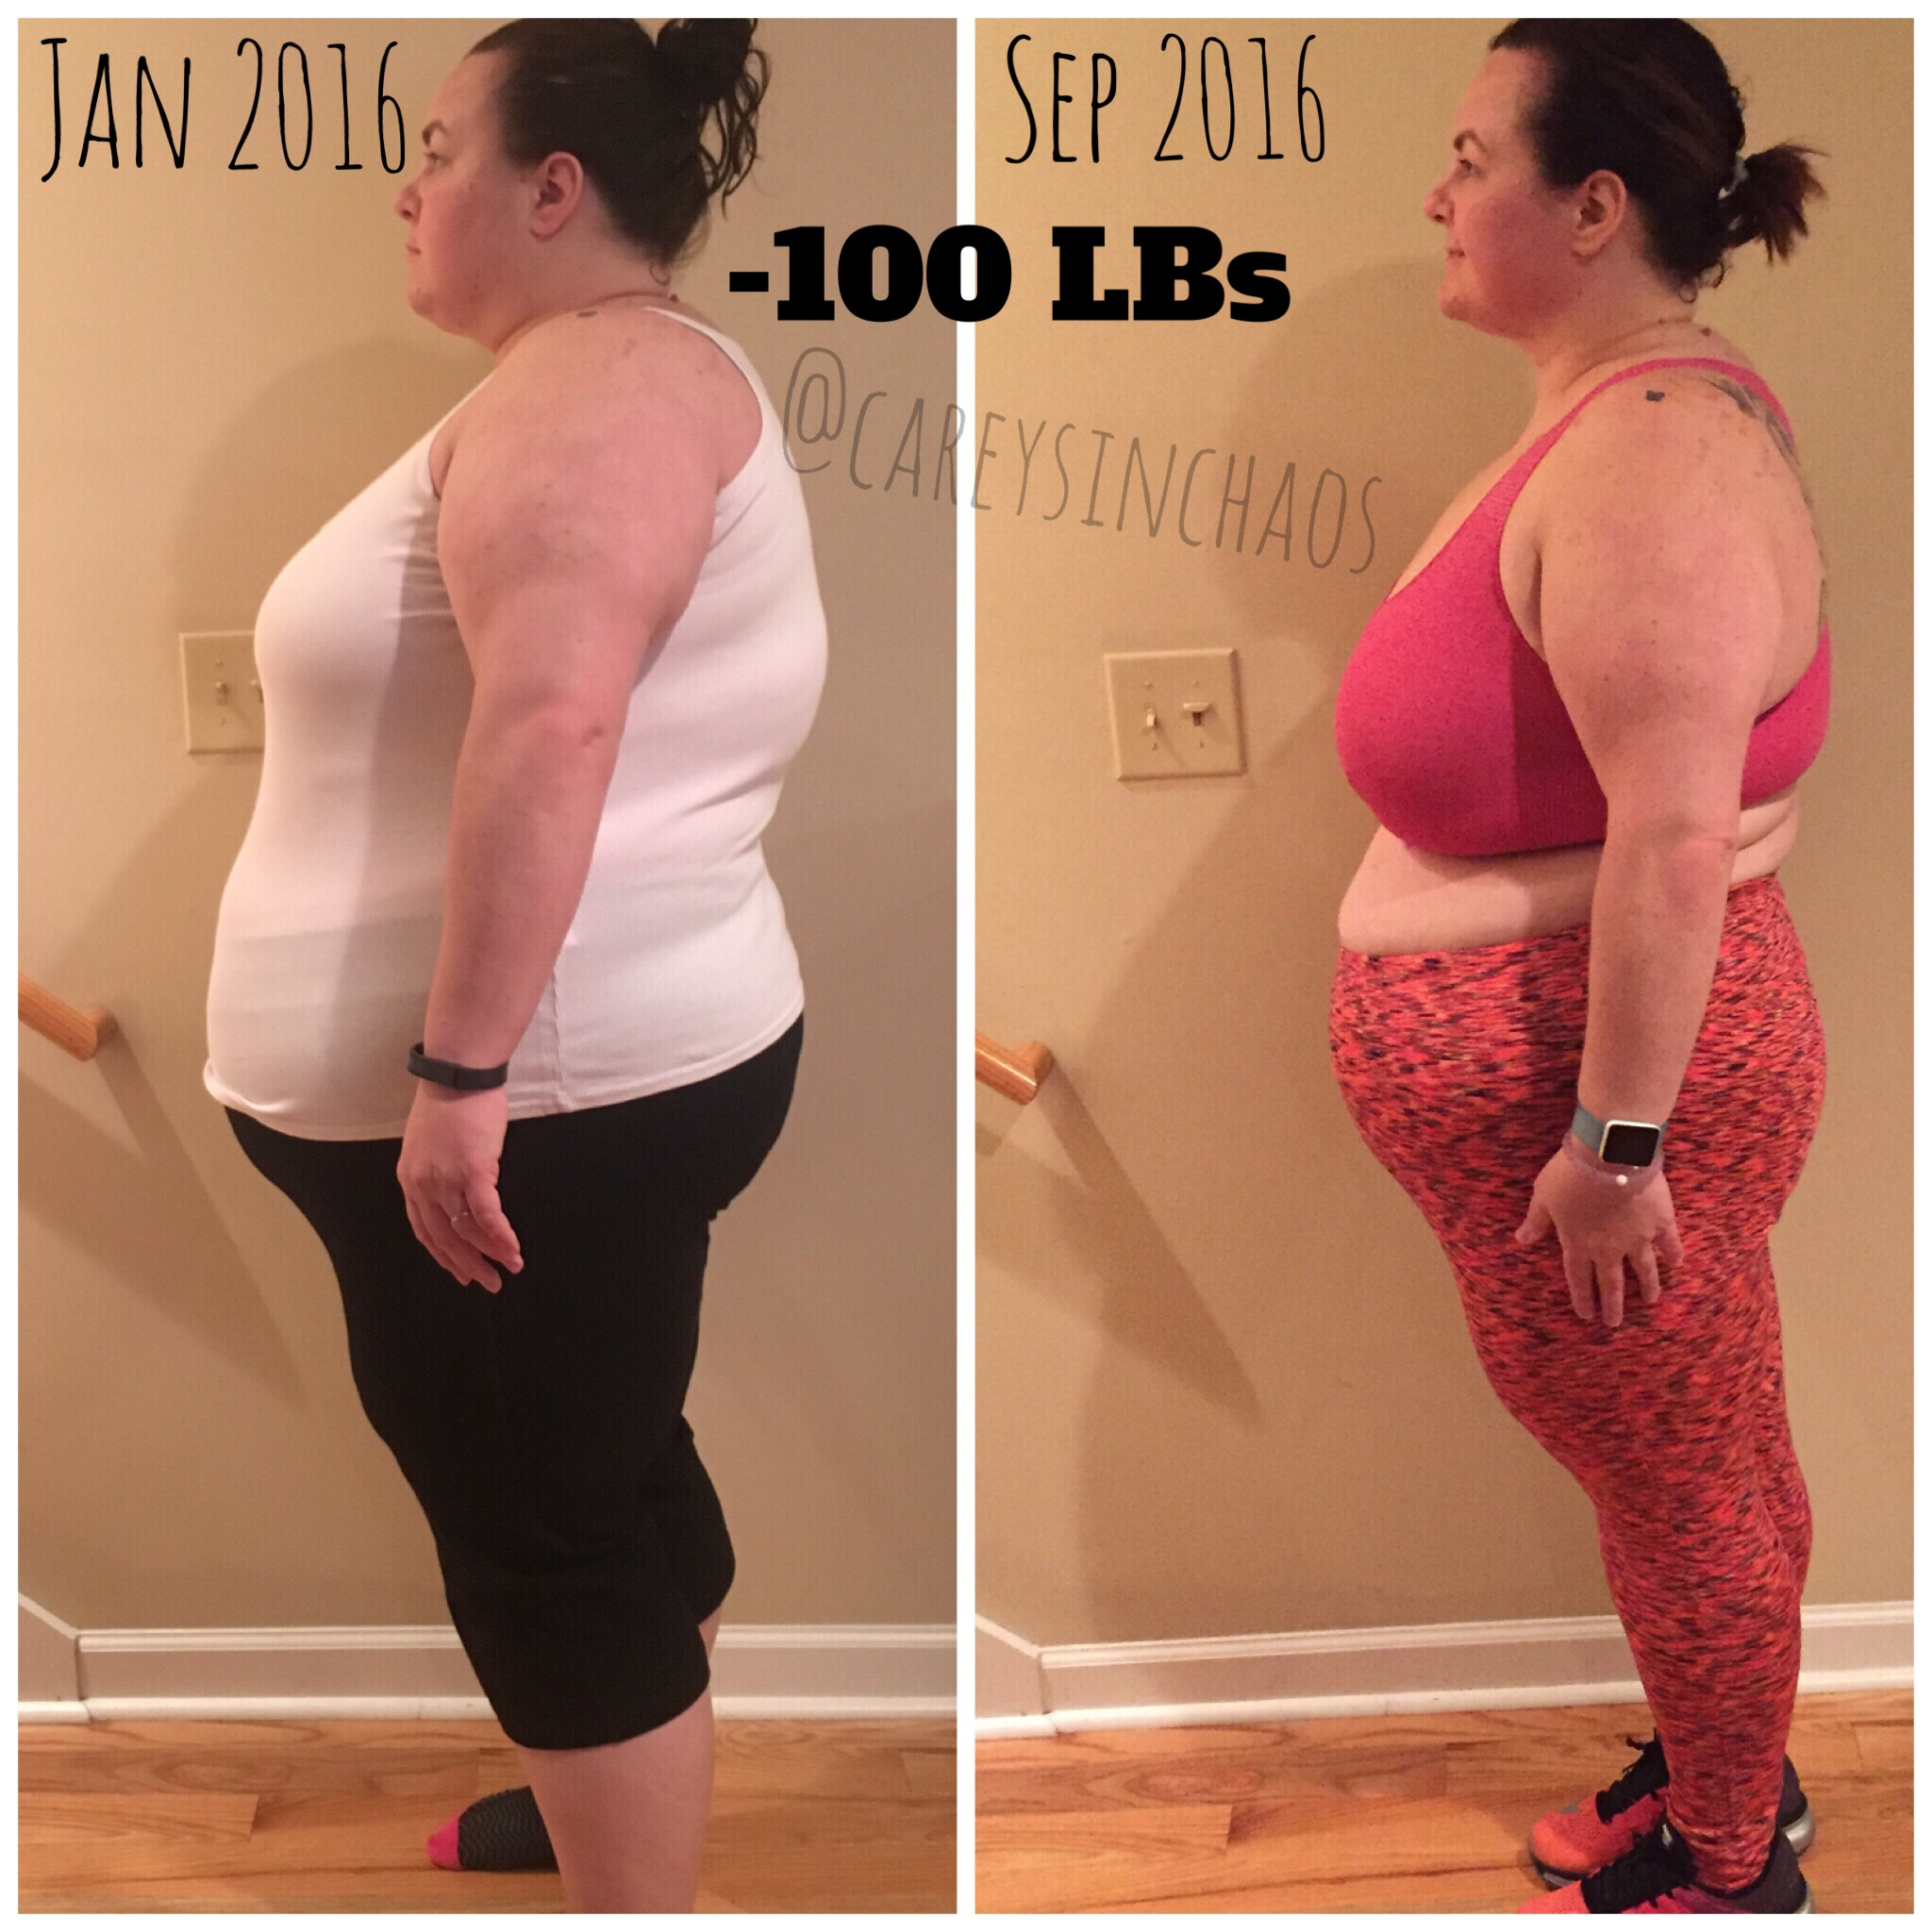 Amy lost 101 pounds! See my before and after weight loss pictures, and read amazing weight loss success stories from real women and their best weight loss diet plans and programs. Motivation to lose weight with walking and inspiration from before and after weightloss pics and photos.